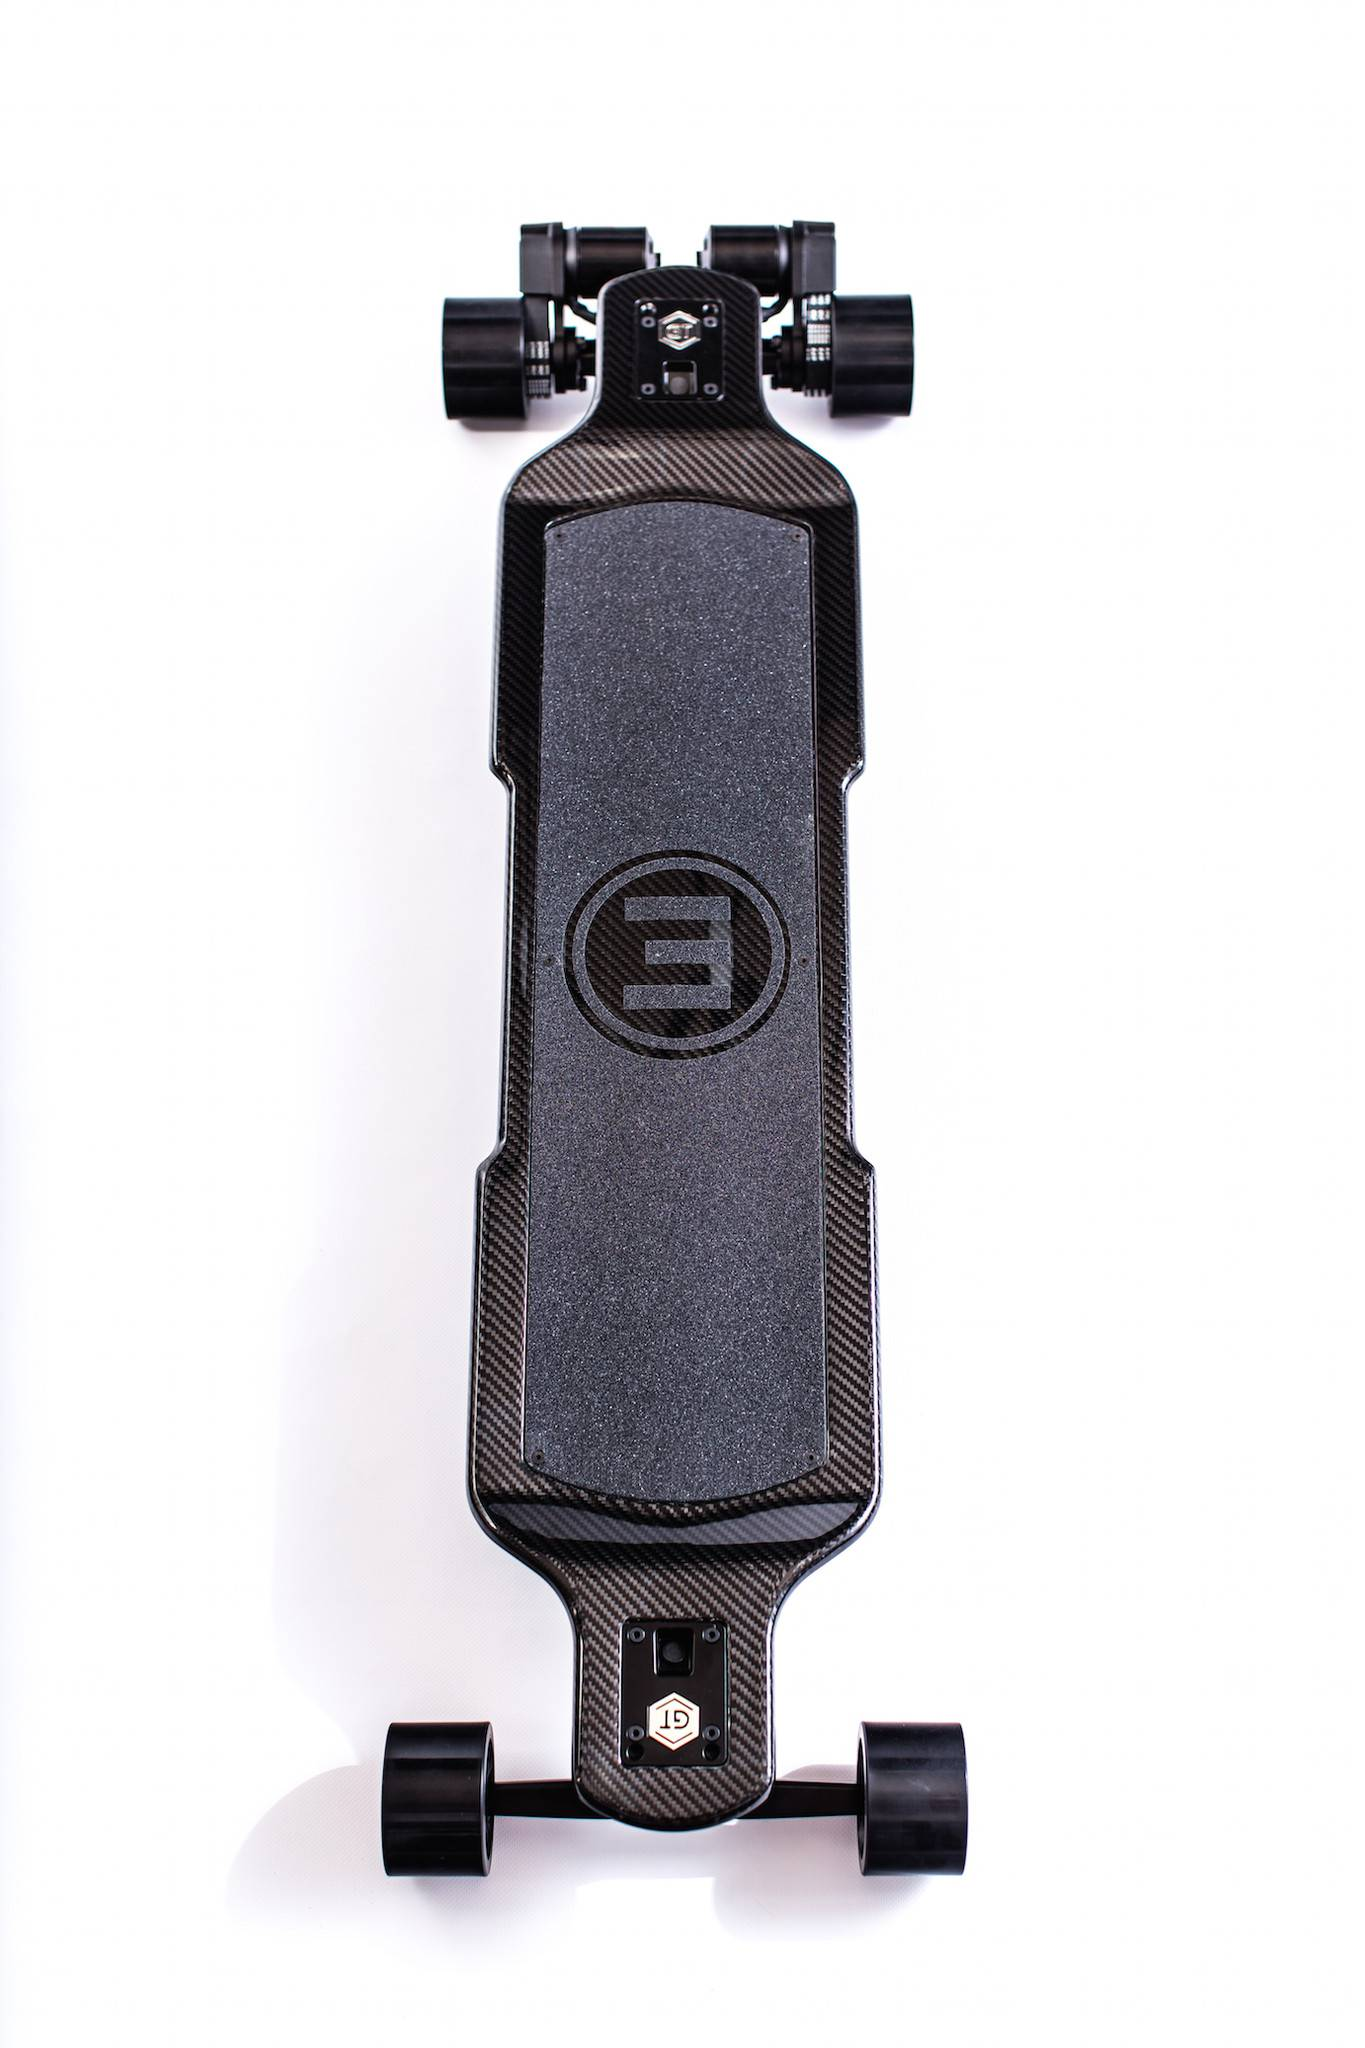 Evolve Carbon GT Top View